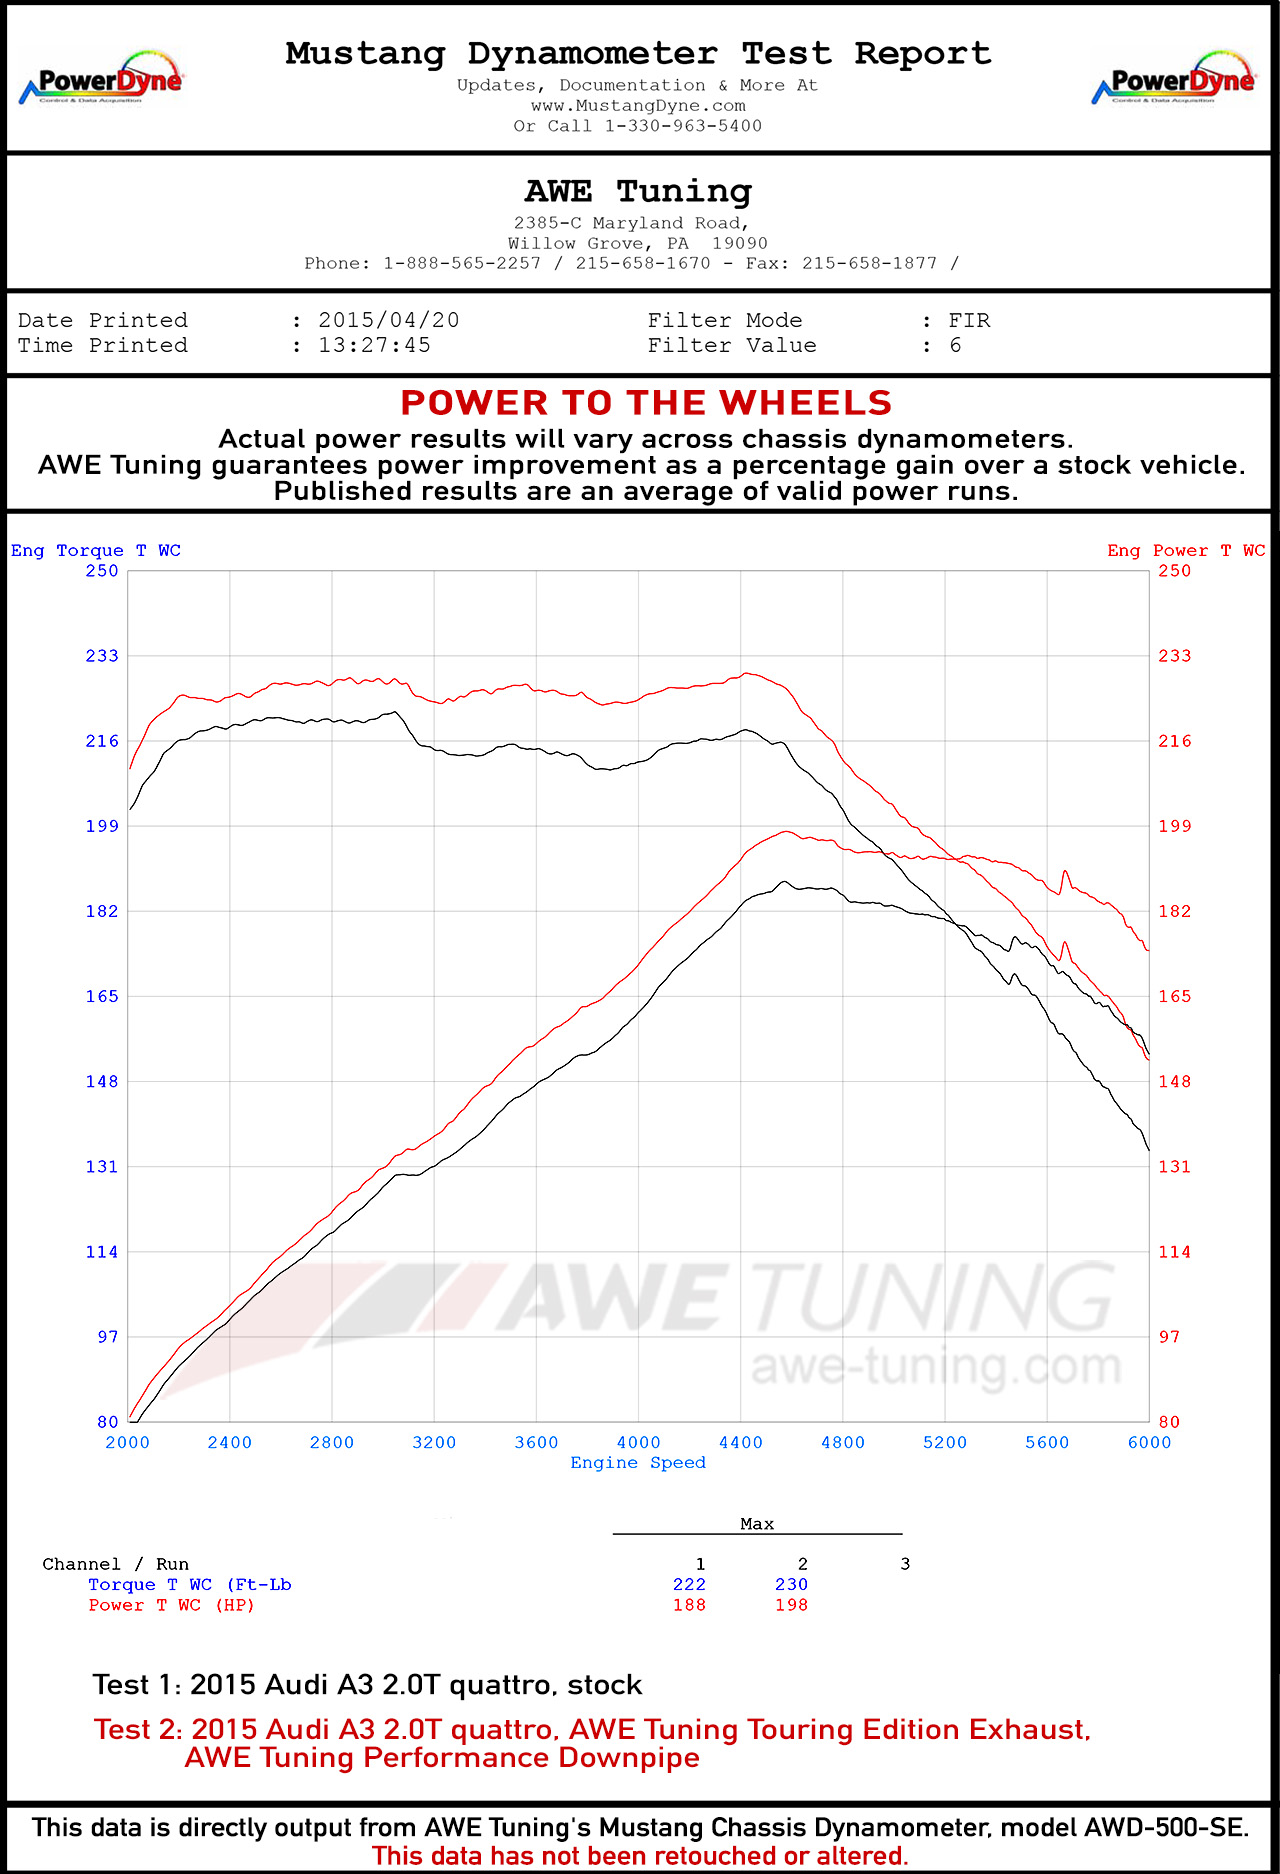 Wheel Horsepower Gains for the AWE 8V A3 Exhaust System